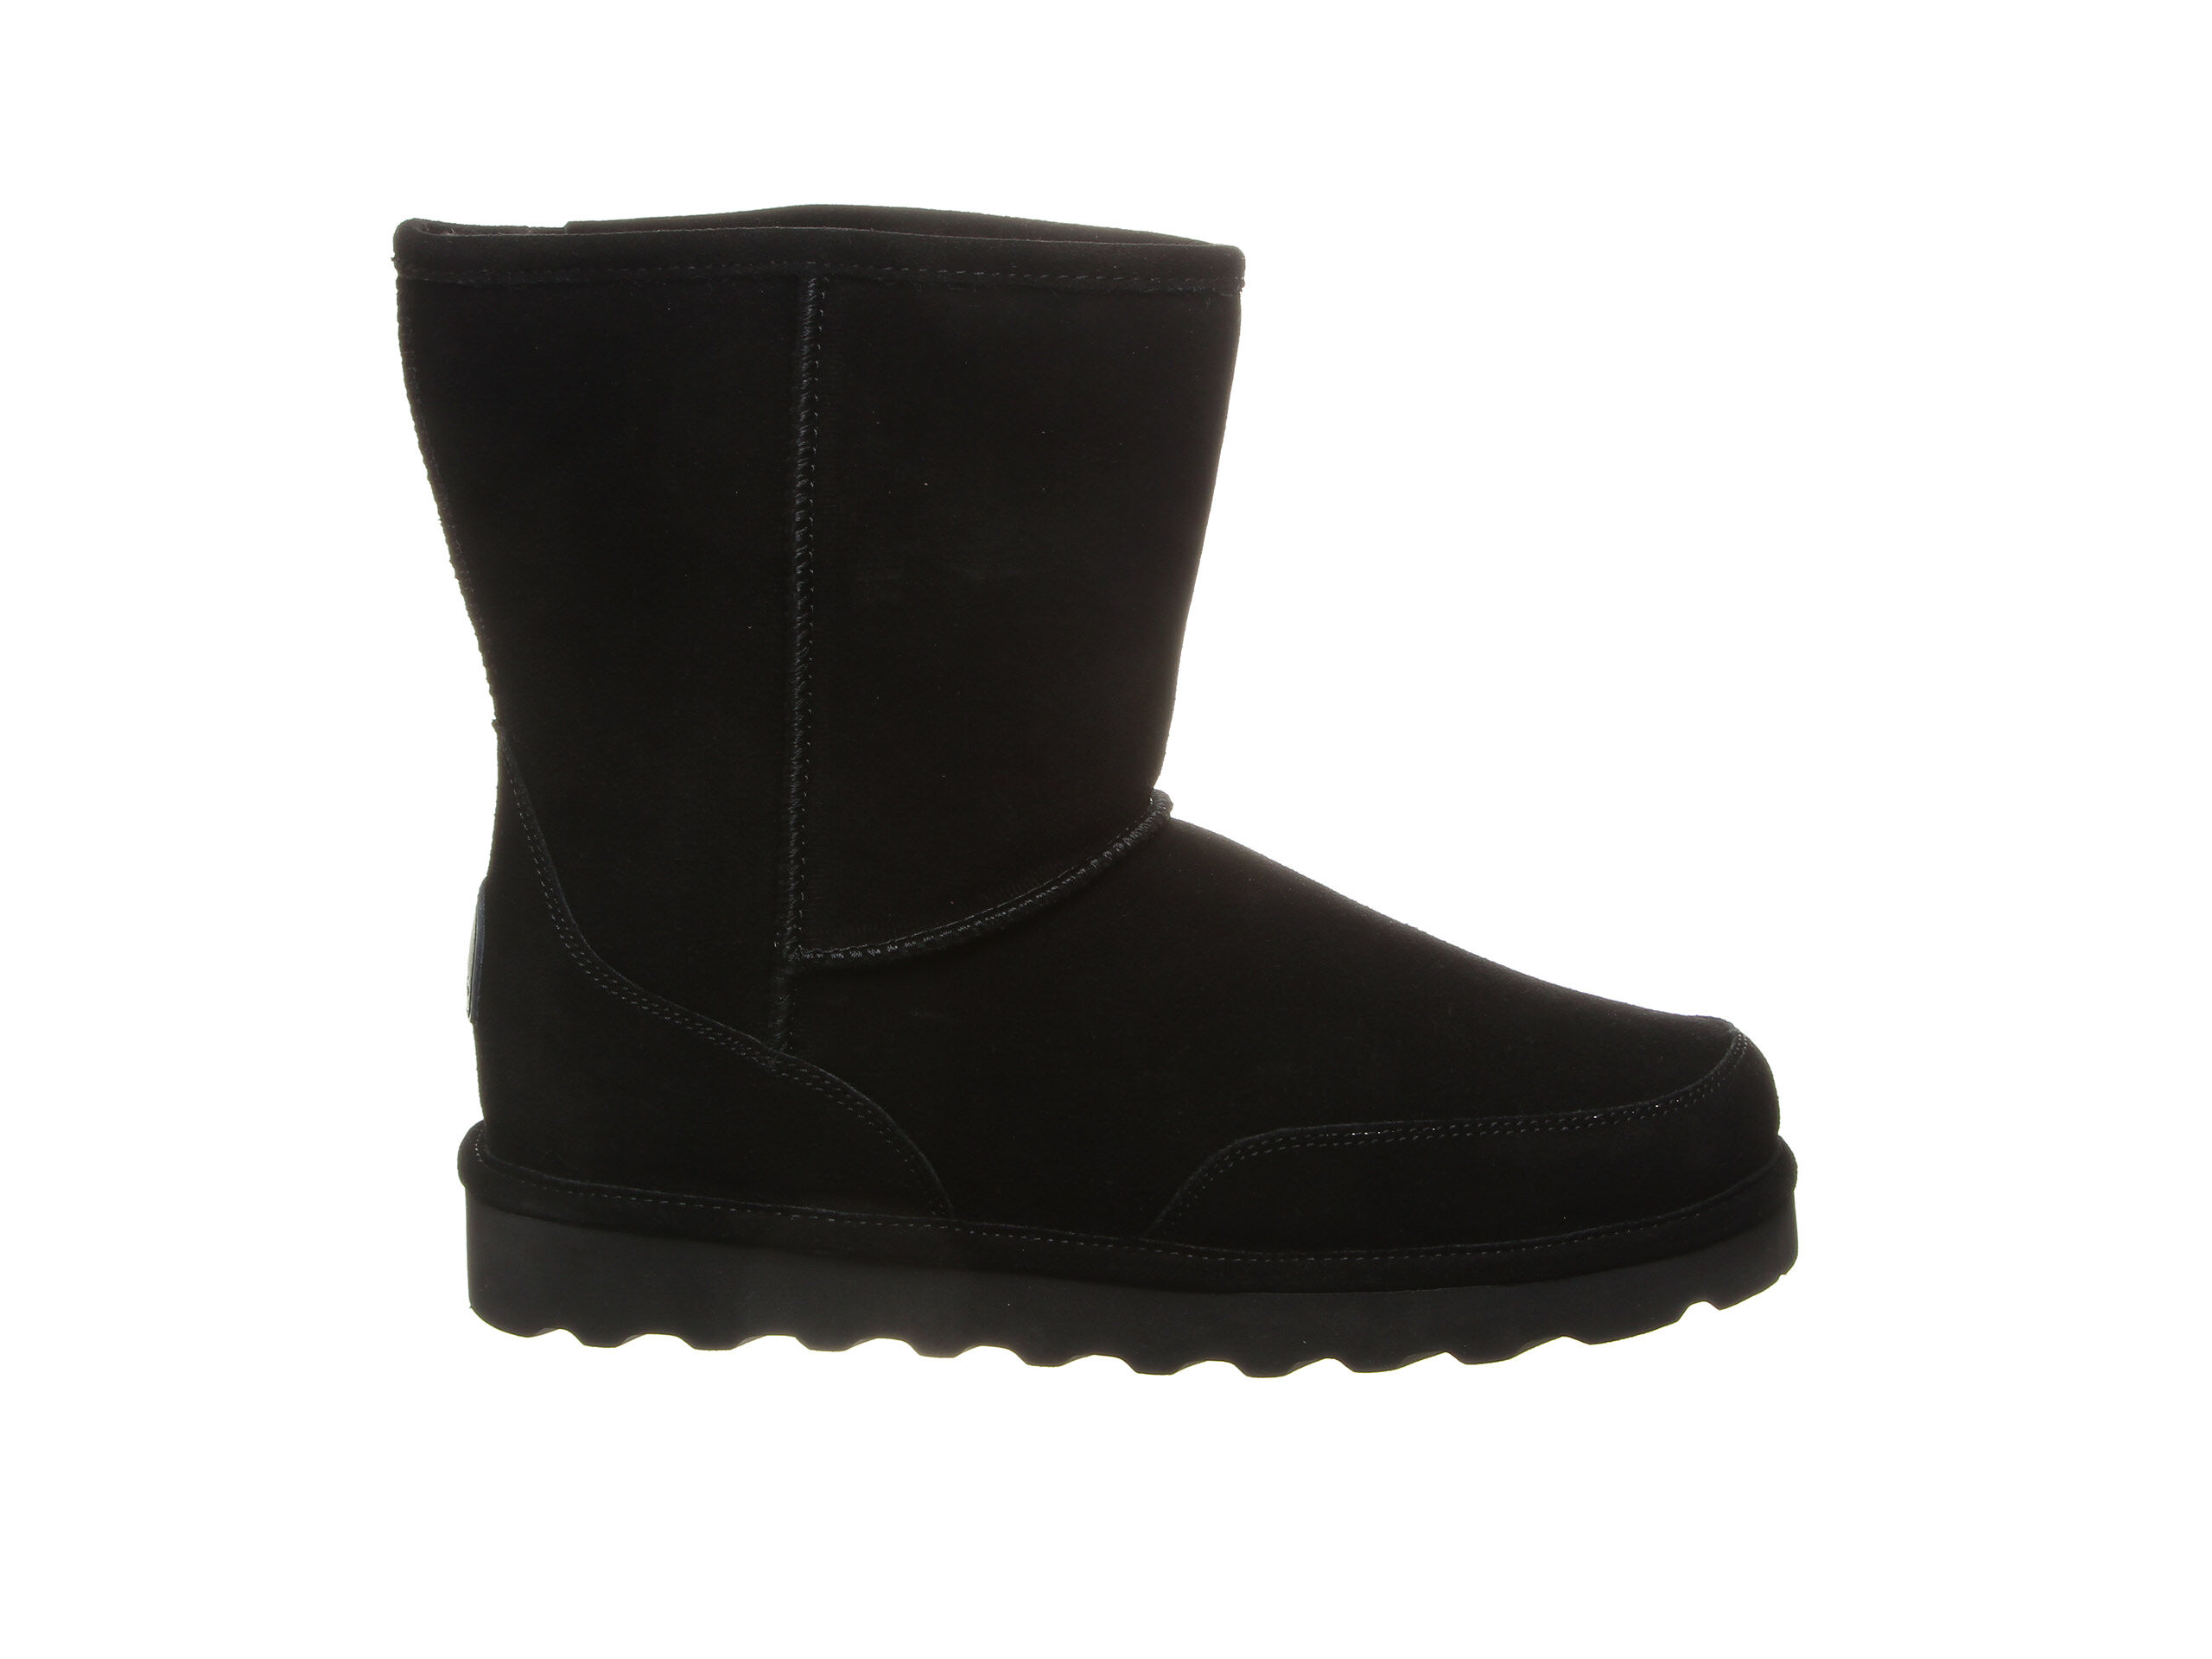 hot sale Men's Bearpaw Brady Pull-On Boots Black